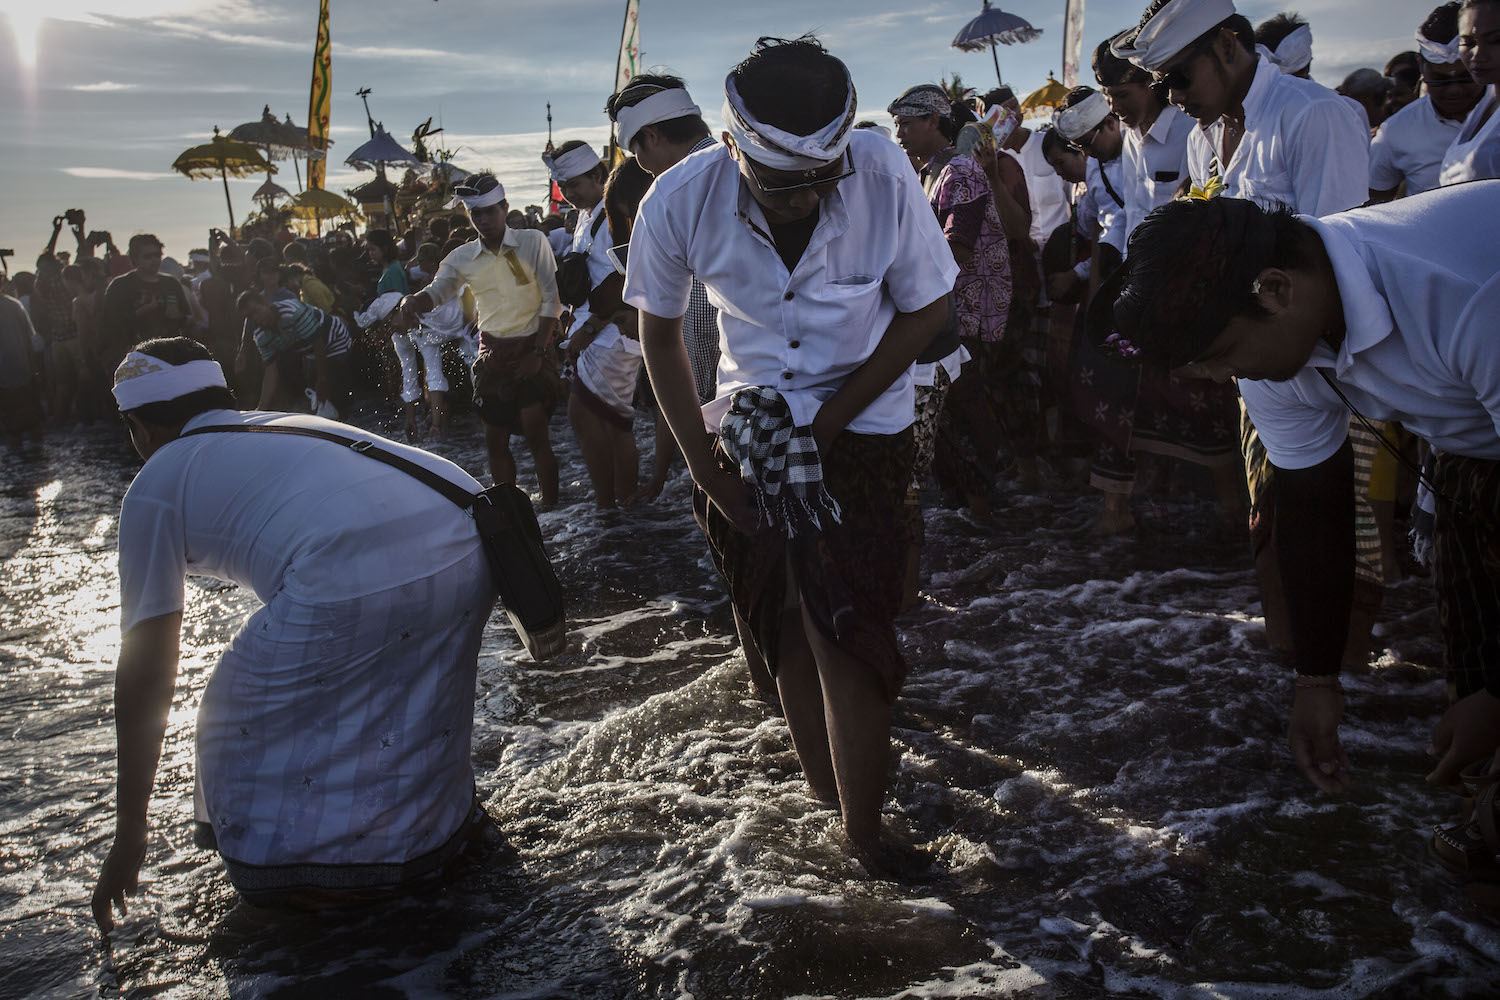 Hindu devotees prepare wash their faces with sea water as they pray during the Melasti ritual ceremony at Parangkusumo beach on March 11, 2018 in Yogyakarta, Indonesia.The Melasti ritual is held annually ahead of the Nyepi Day of Silence, a ceremony intended to cleanse and purify the souls of the Balinese Hindu participants. Nyepi is a Hindu celebration observed every new year according to the Balinese calendar. The national holiday is one of self-reflection and meditation and activities such as working, watching television or travelling are restricted between the hours of 6 a.m. and 6 p.m. (Photo by Ulet Ifansasti/Getty Images)